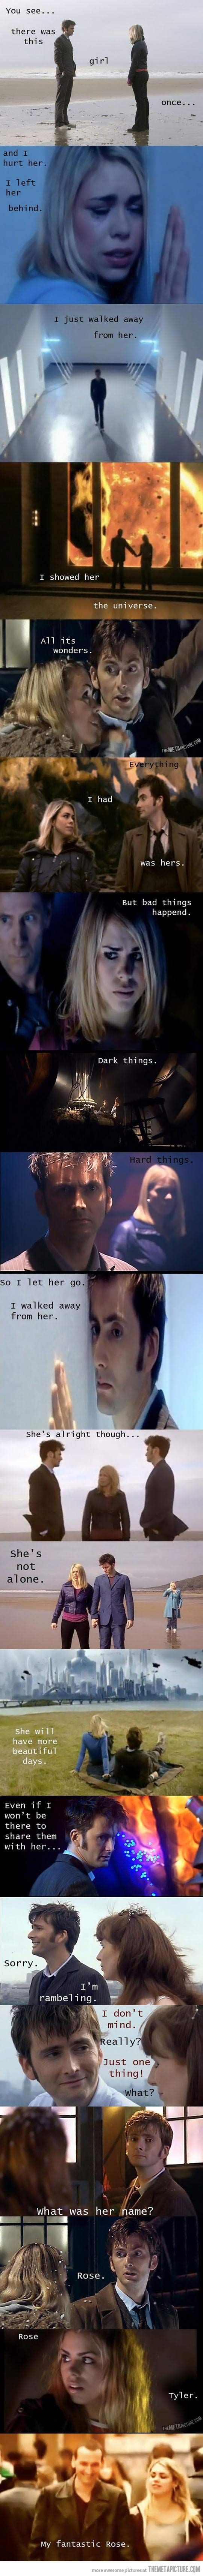 The Doctor & Rose Tyler. All the feels.